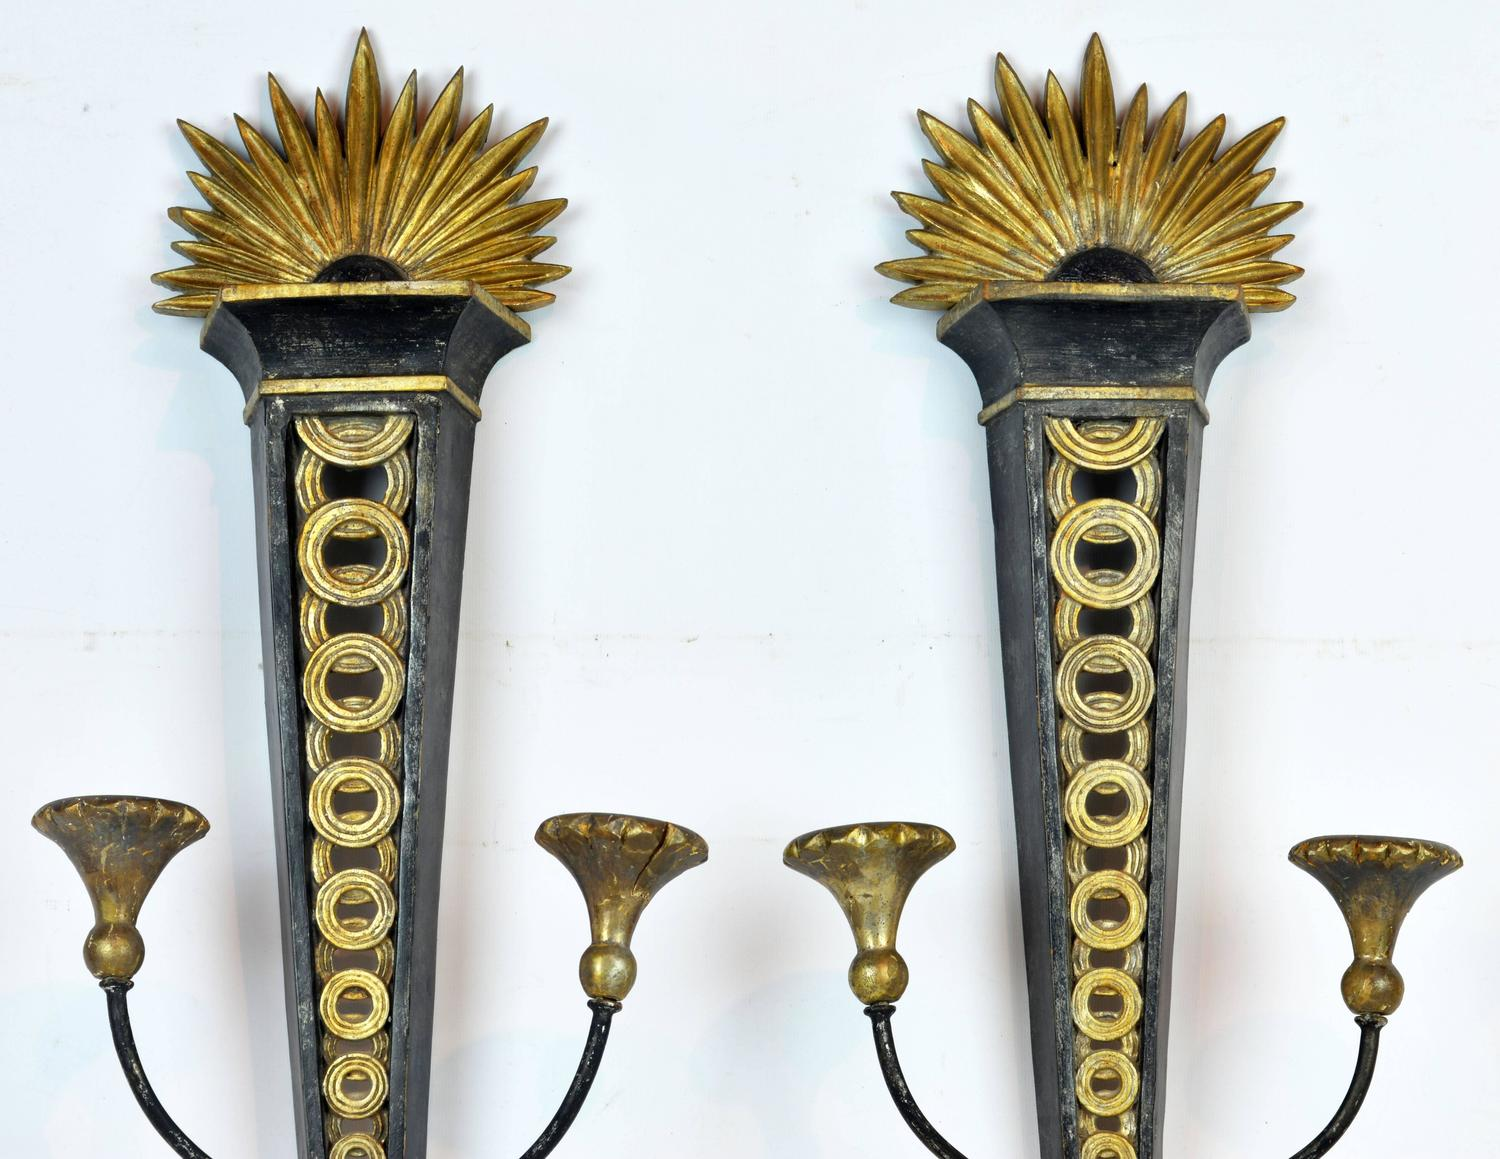 Italian Style Wall Sconces : Pair of Mid-Century Neoclassical Style Italian Palladio Wall Sconces for Candles For Sale at 1stdibs